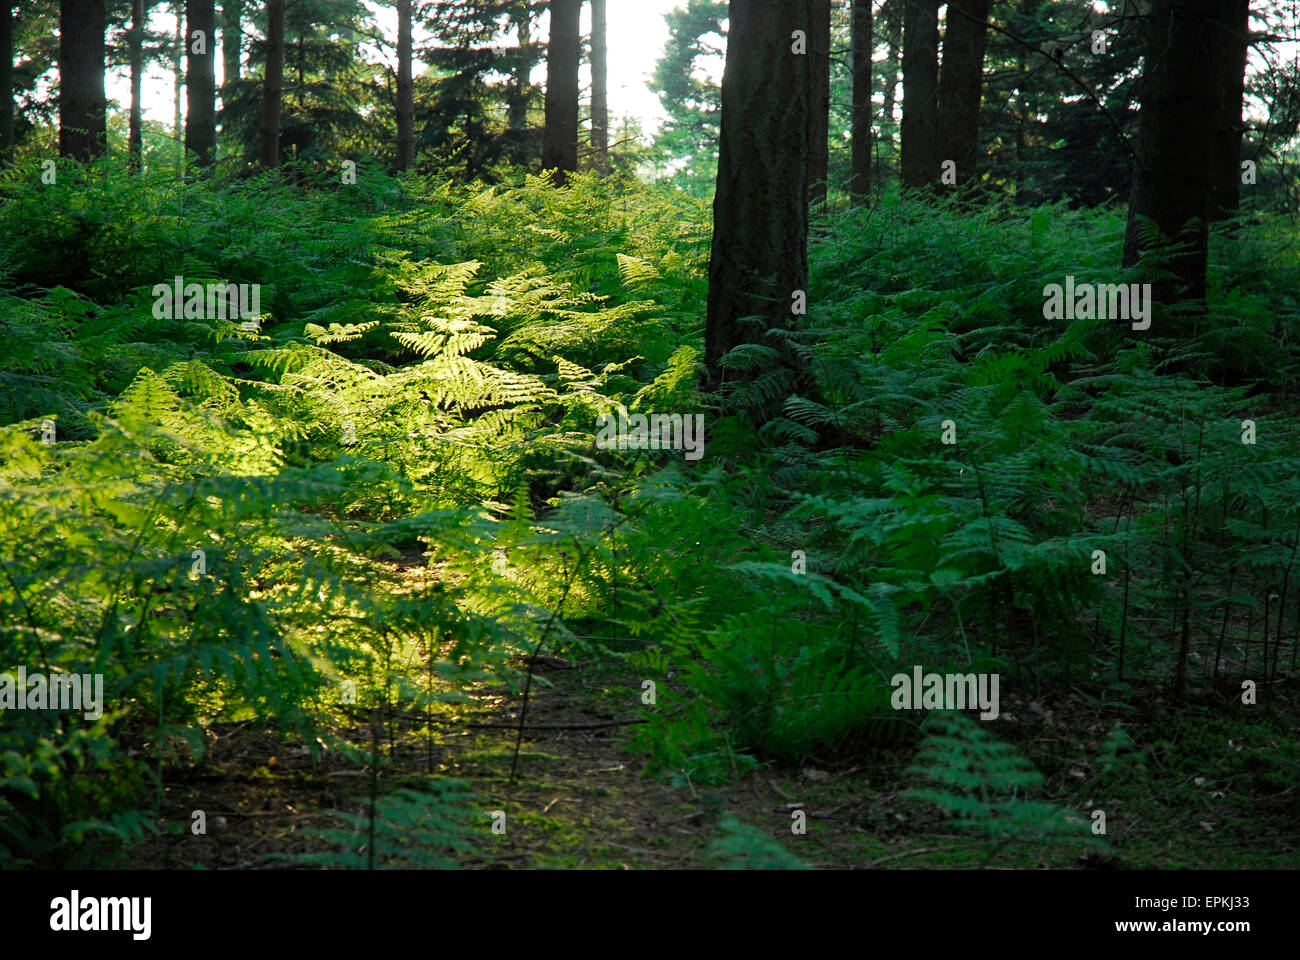 Conifer forest with fern (Osmunda regalis) in foreground England Europe - Stock Image